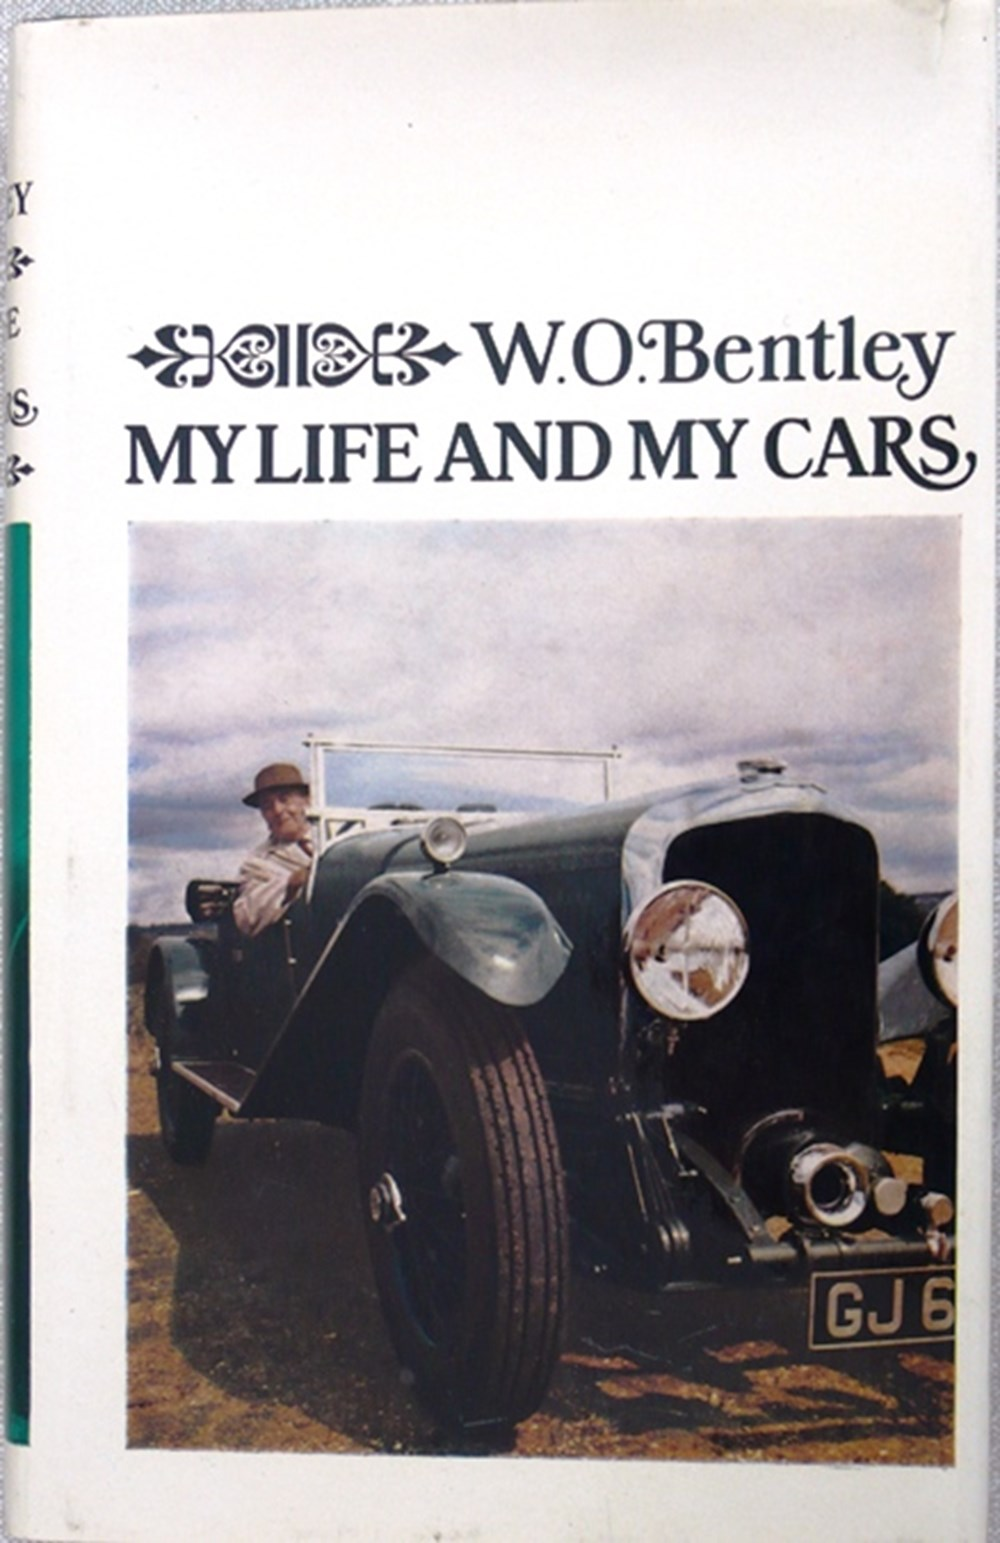 Lot 023 - W.O. Bentley signed book